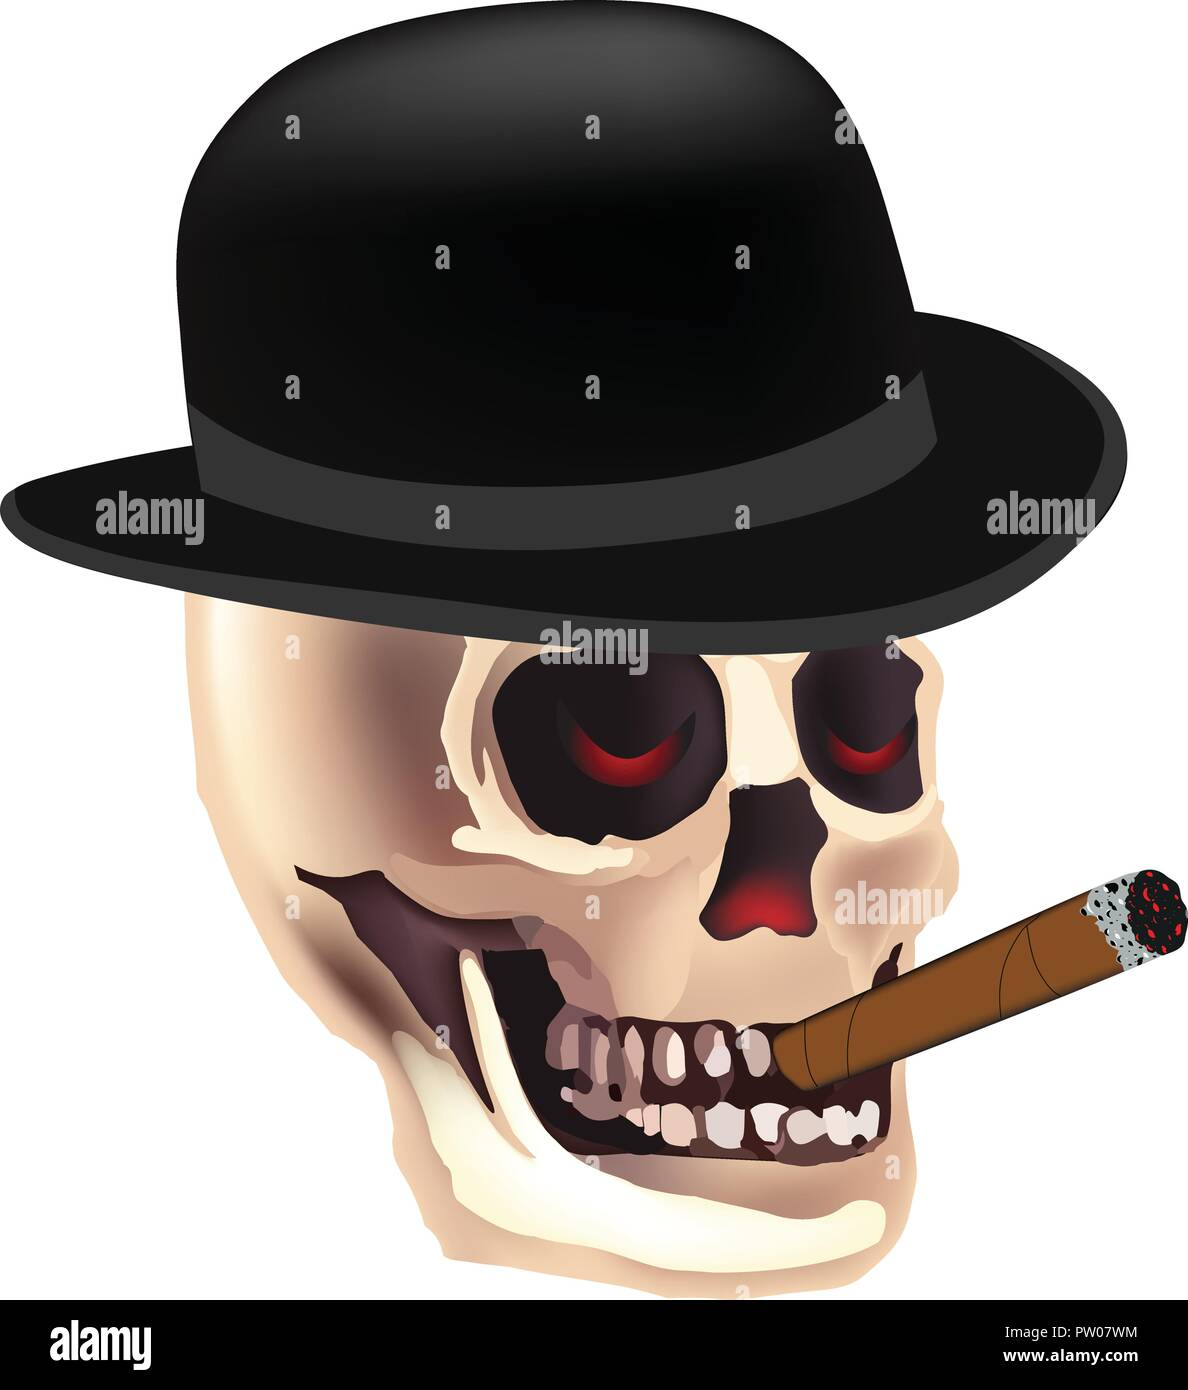 d47e1e943cfbd Halloween skeleton with top hat.Grim Reaper smoking skull vector - Stock  Image